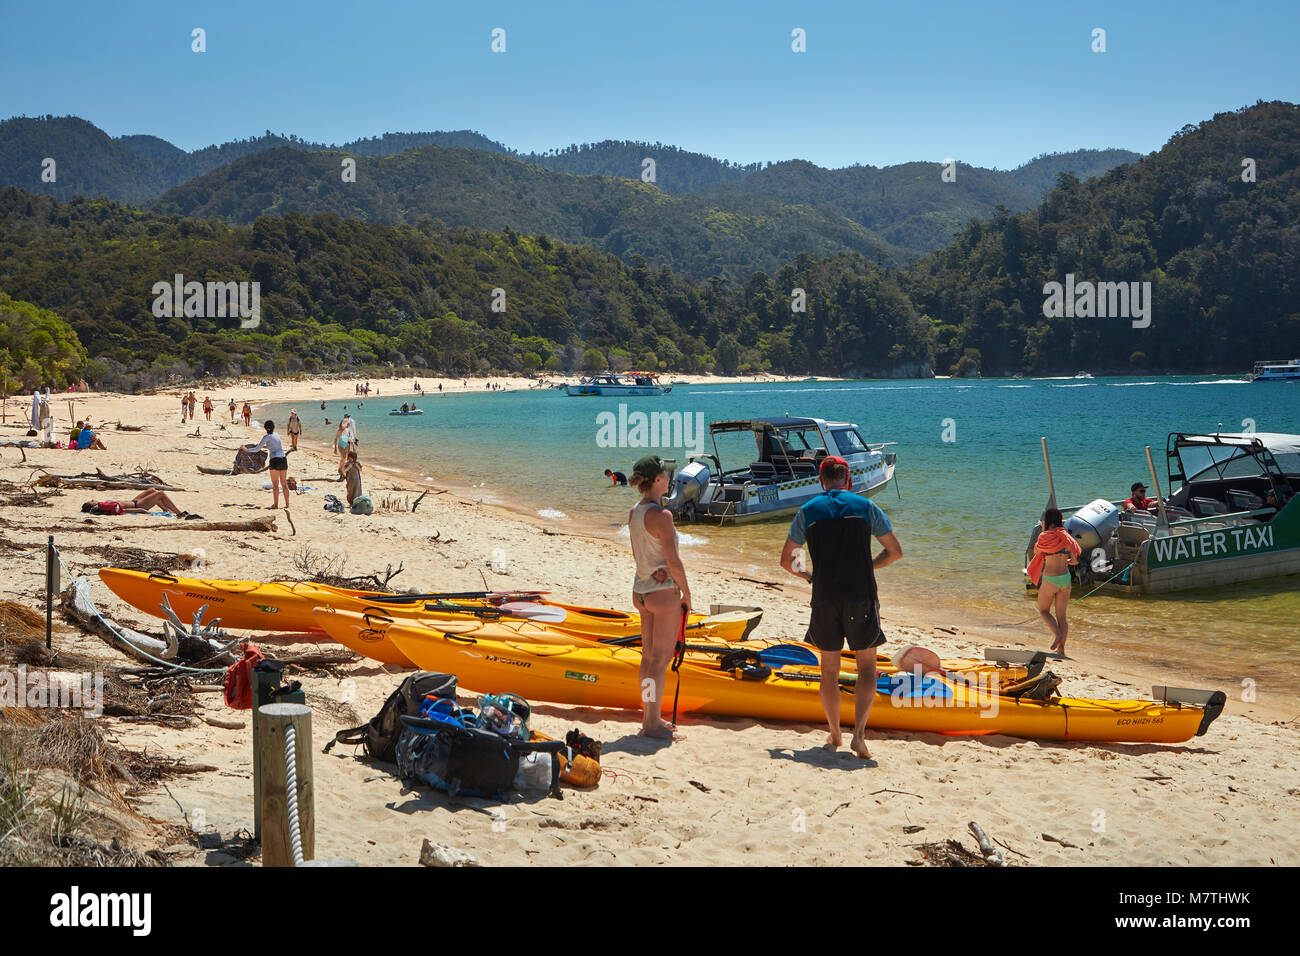 Kayaks and water taxis at Anchorage Beach, Abel Tasman National Park, Nelson Region, South Island, New Zealand - Stock Image